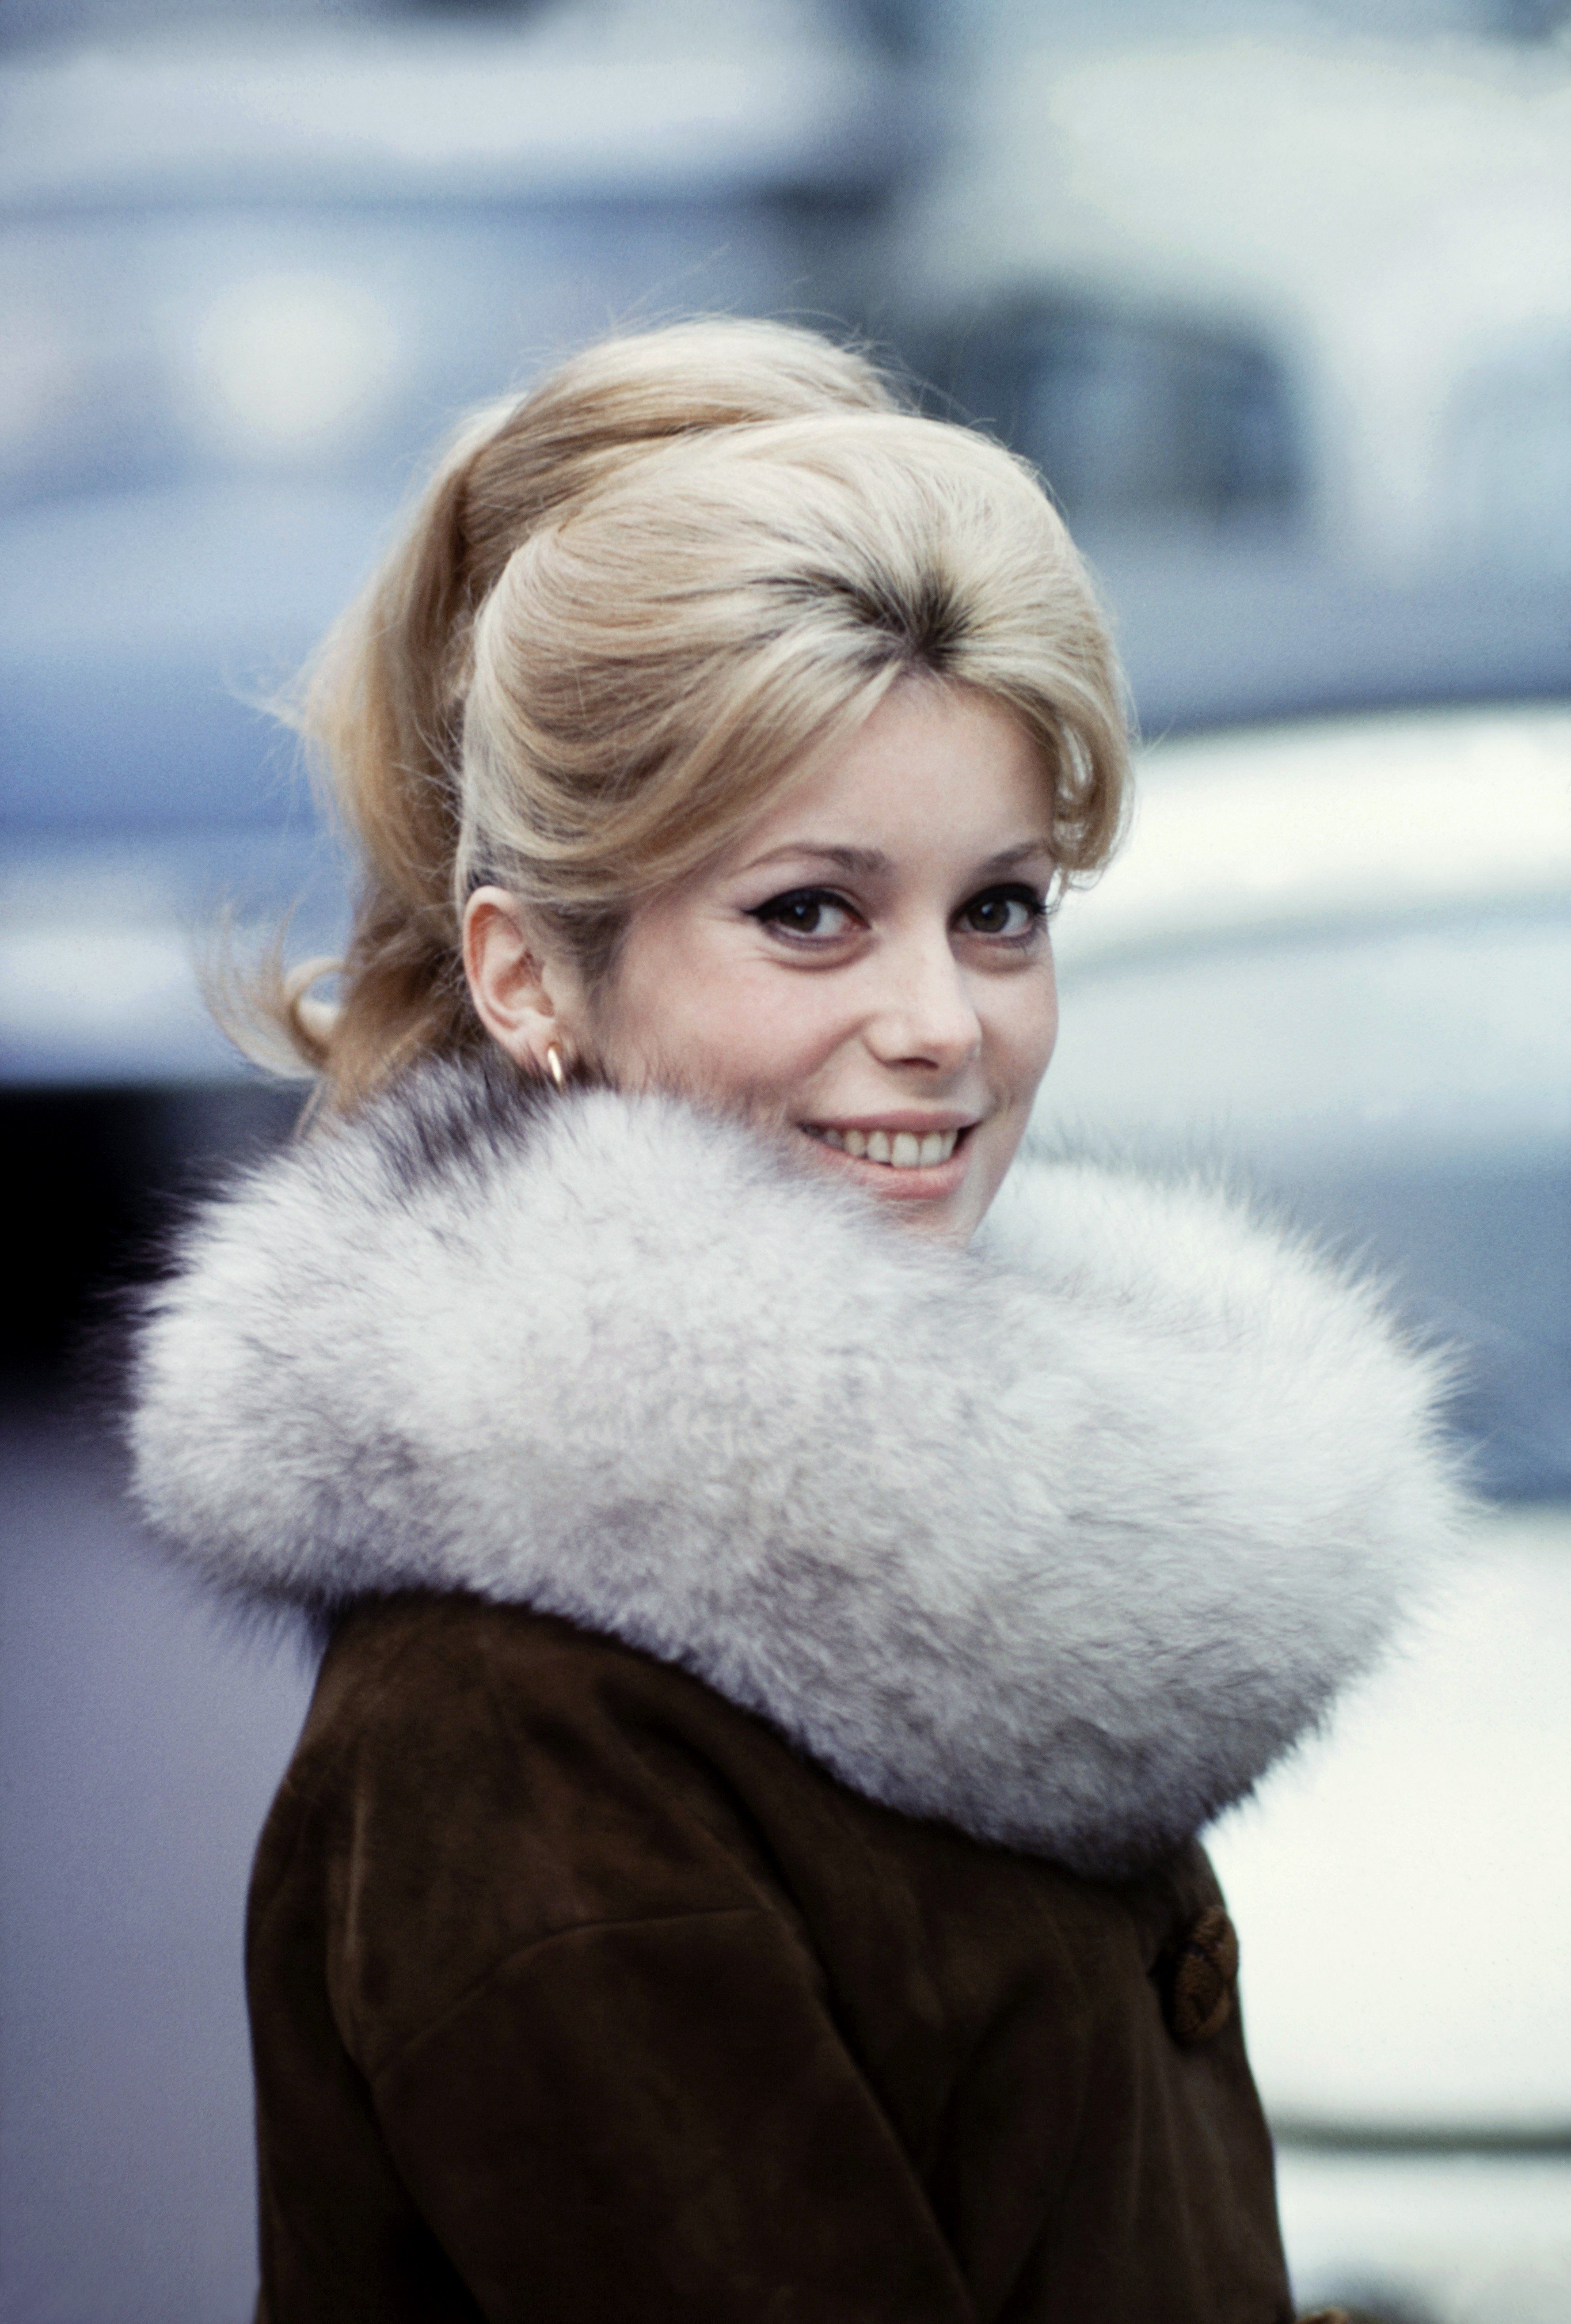 FRANCE - NOVEMBER 01:  Files Pictures of French Actress Catherine Deneuve In France In November, 1963-Files pictures of French actress Catherine Deneuve in November, 1963.  (Photo by PAT/Gamma-Rapho via Getty Images)